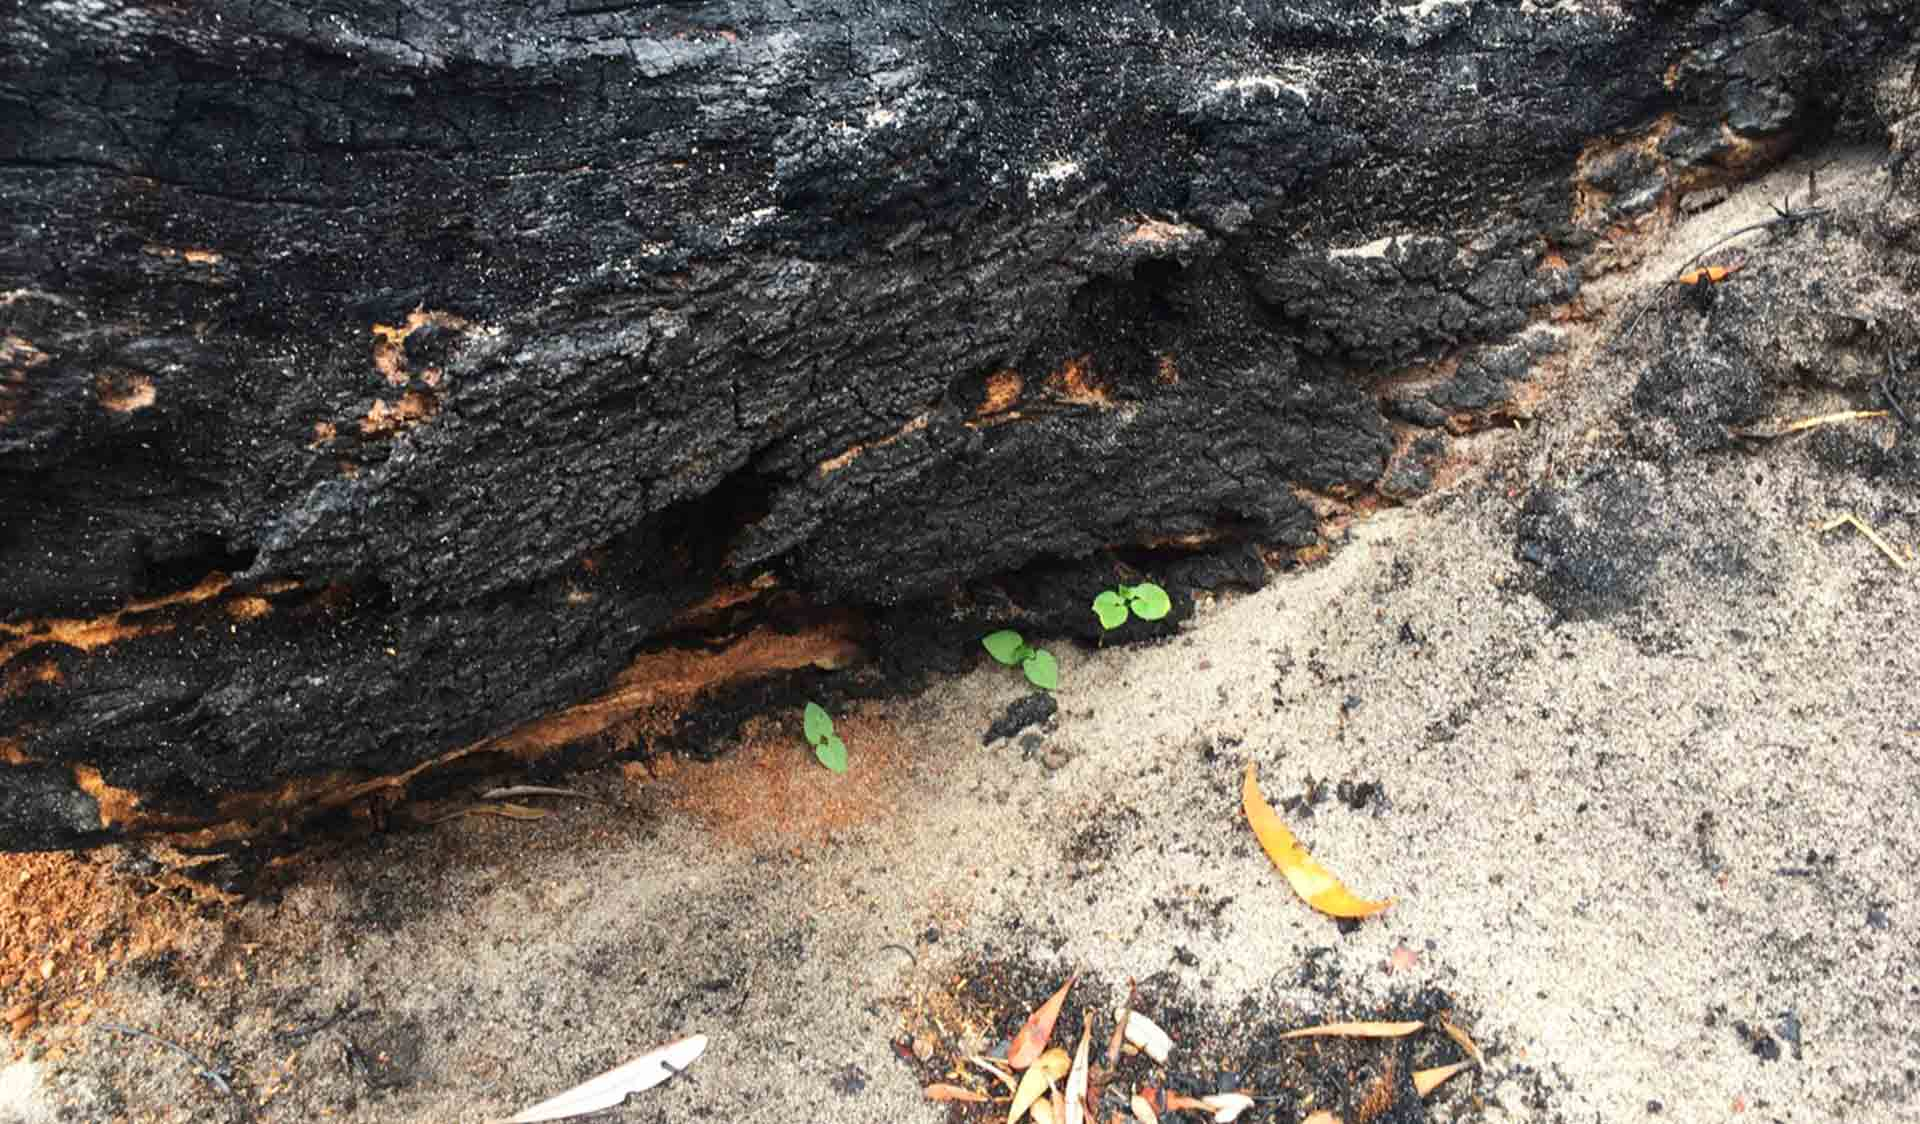 Dolichos pea (weed) germinating from under a burnt log at Cape Conran Coastal Park after 2019-20 bushfires